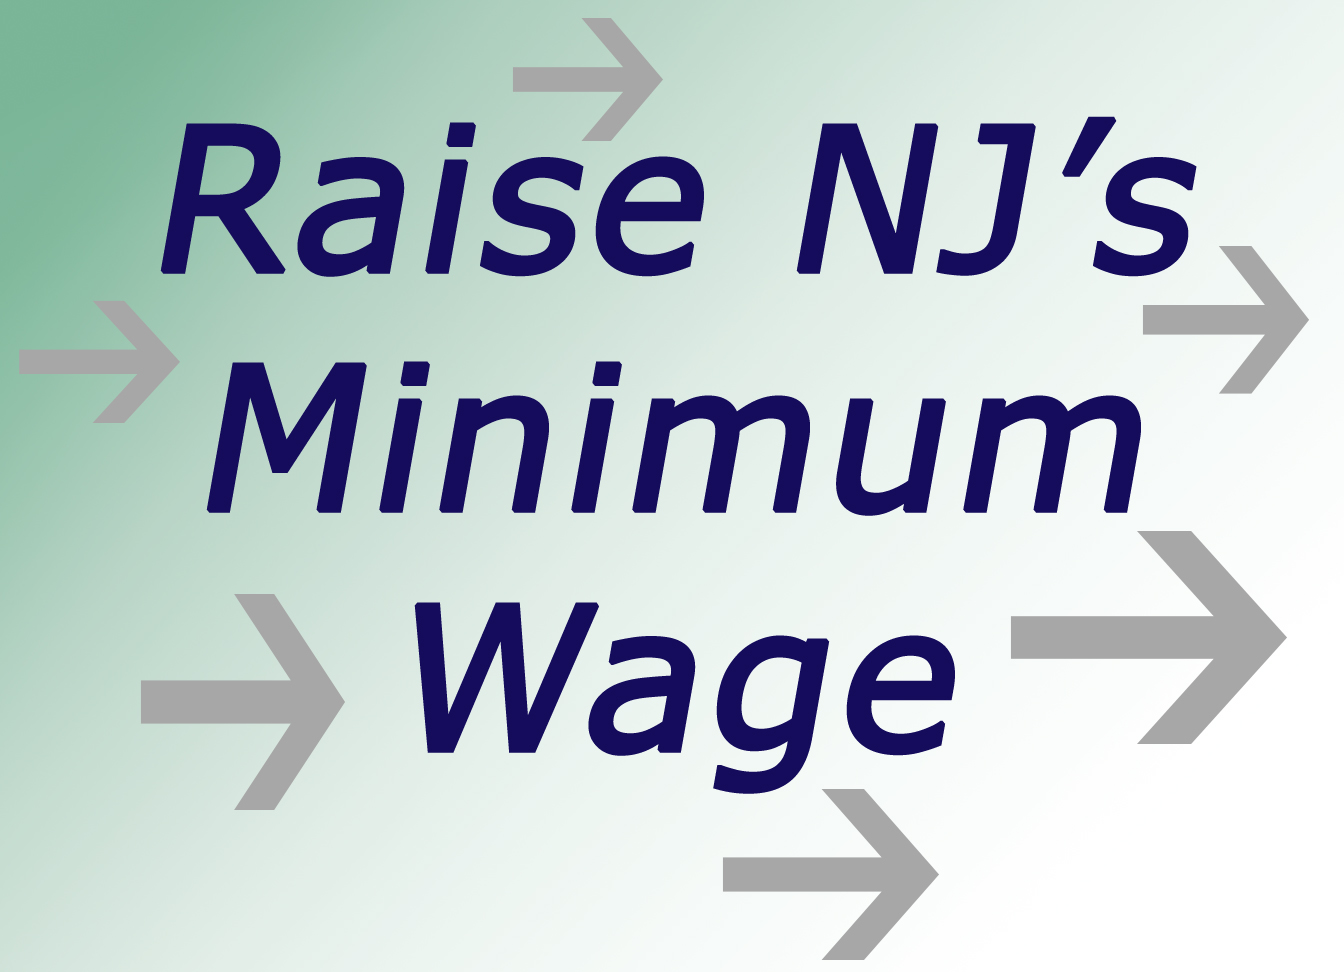 Raise_NJs_Minimum_Wage.jpg